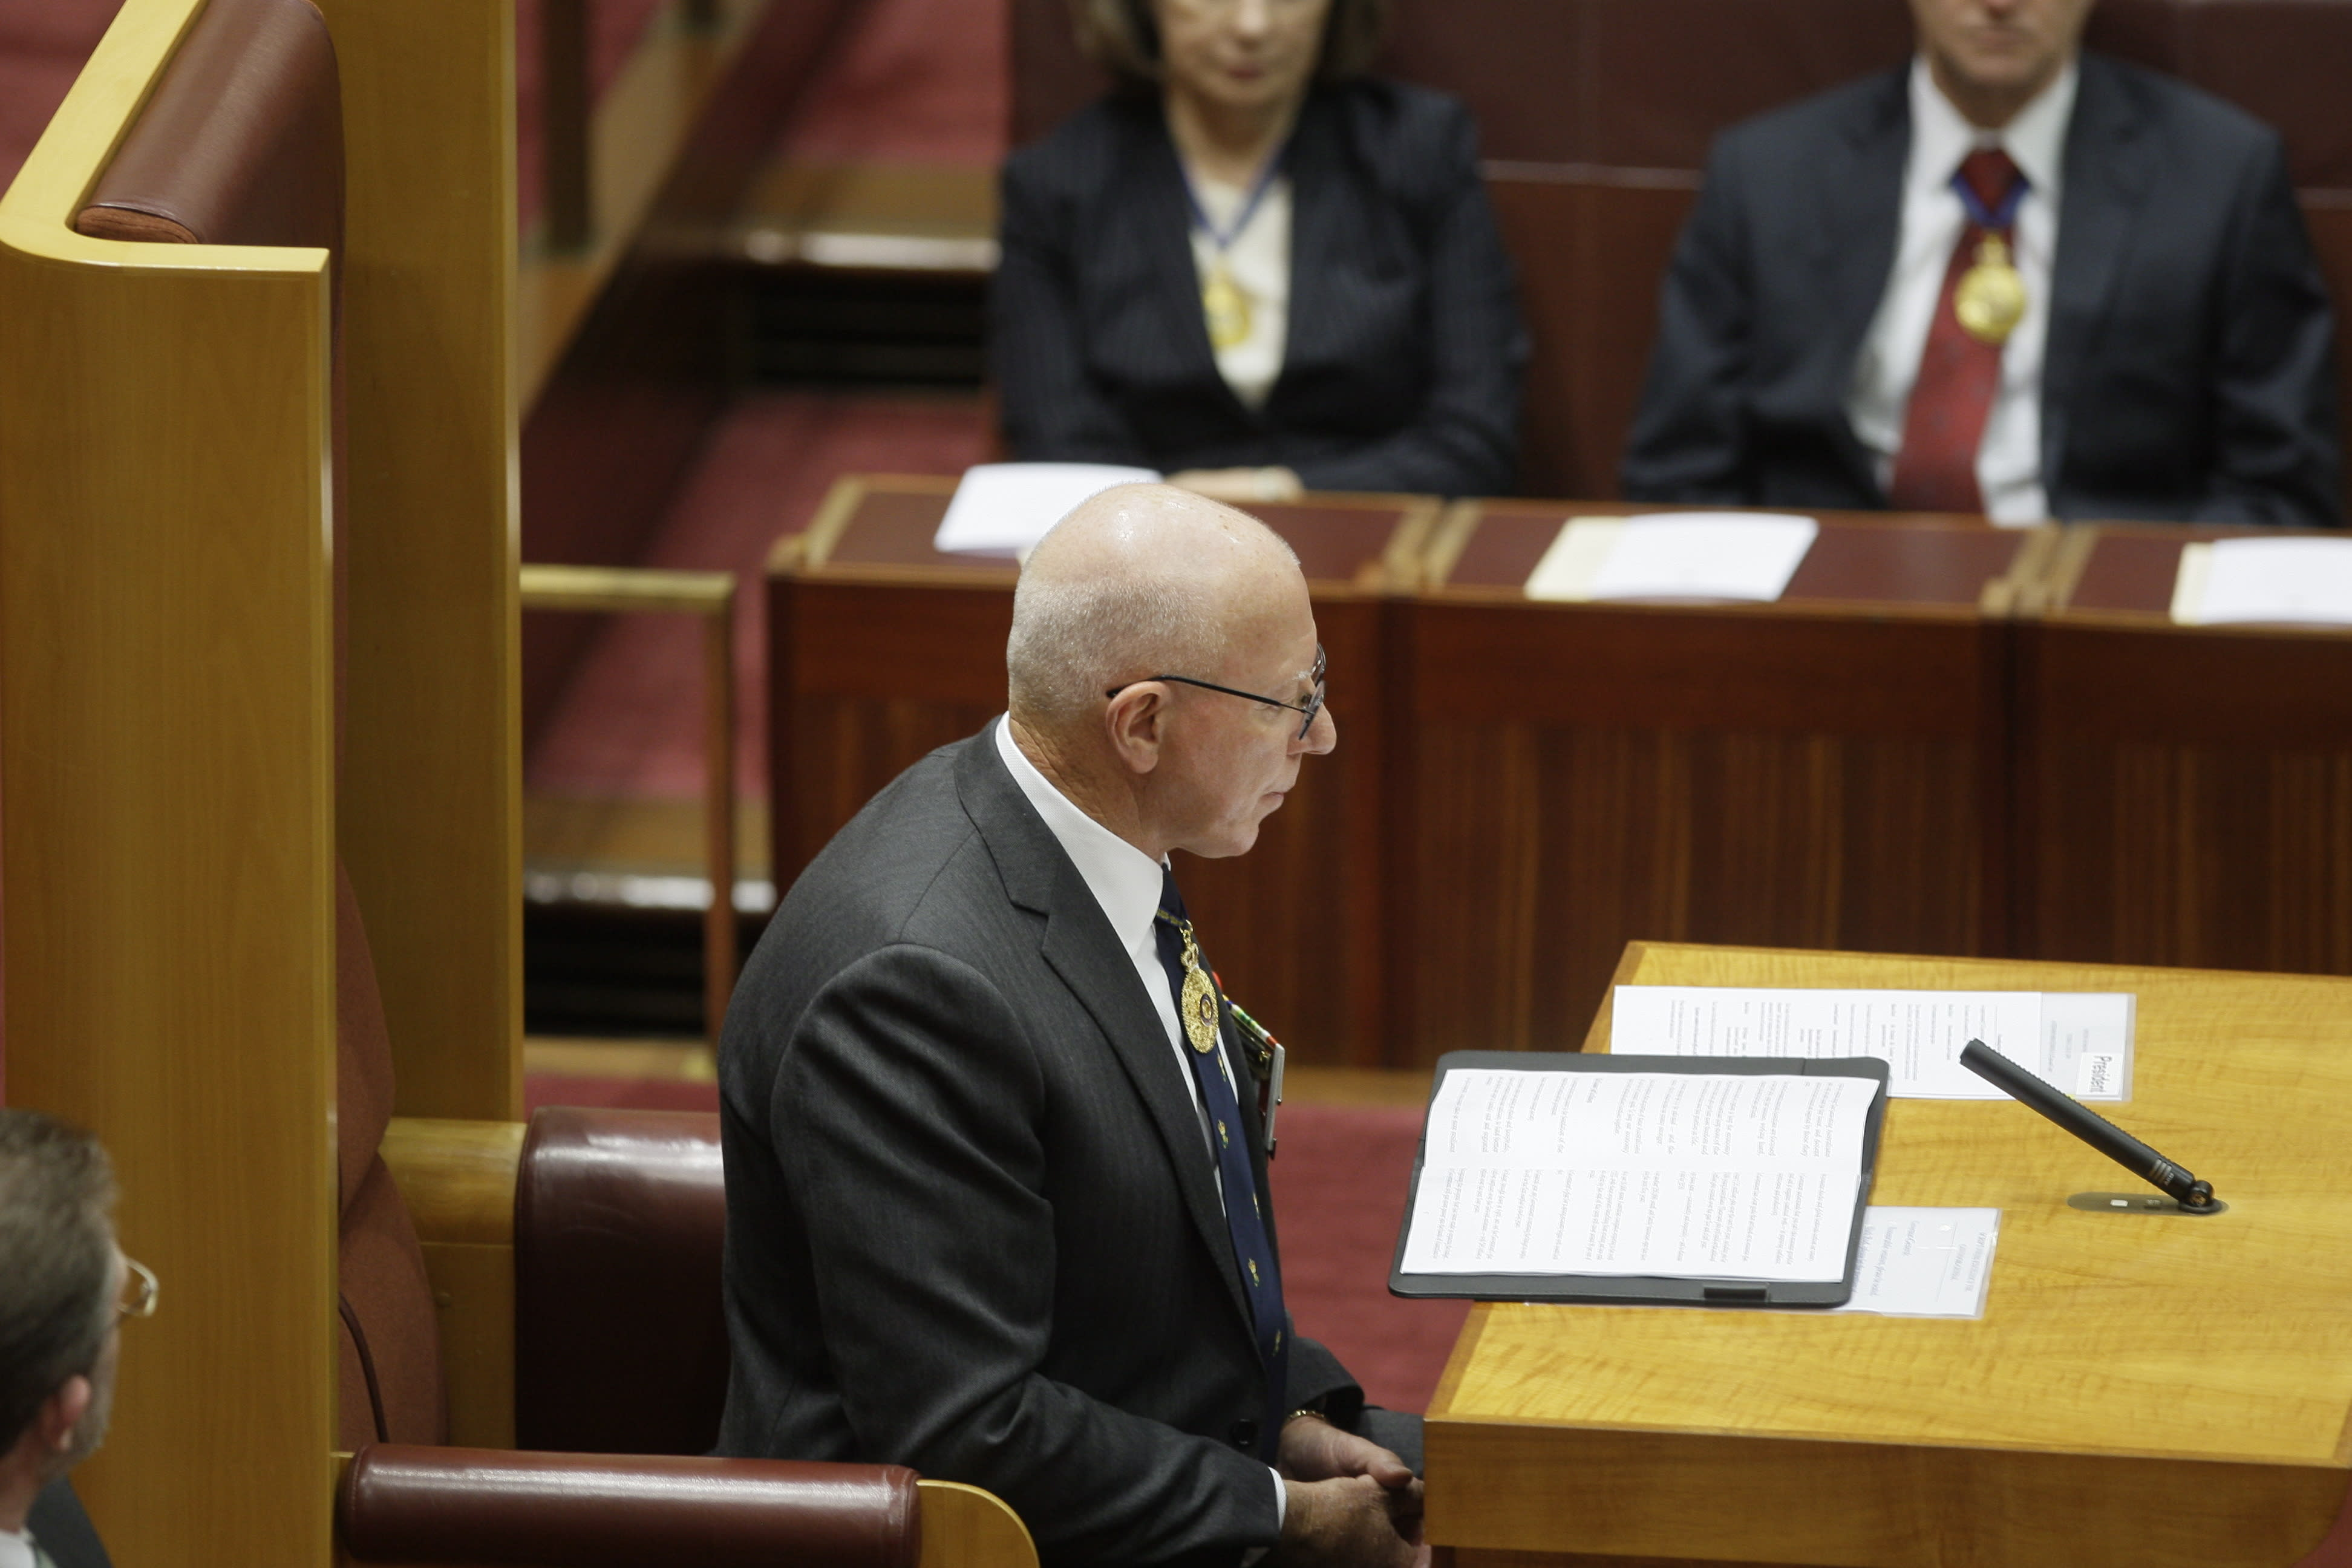 Australian Parliament resumes for first time since election